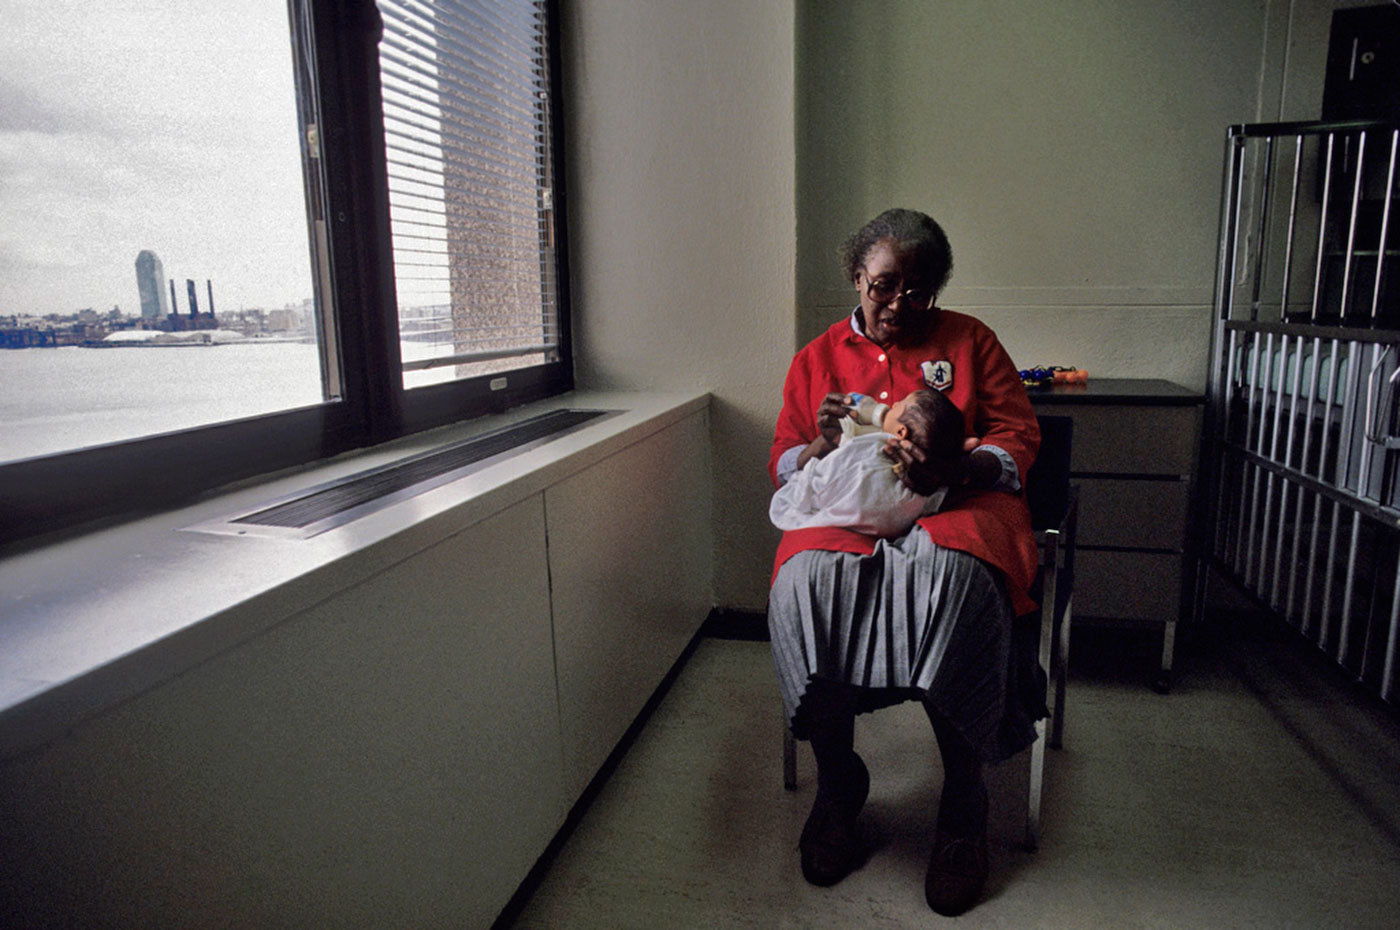 Foster Grandparent program, NY : HEALTHCARE & MEDICAL : Viviane Moos |  Documentary Photographer